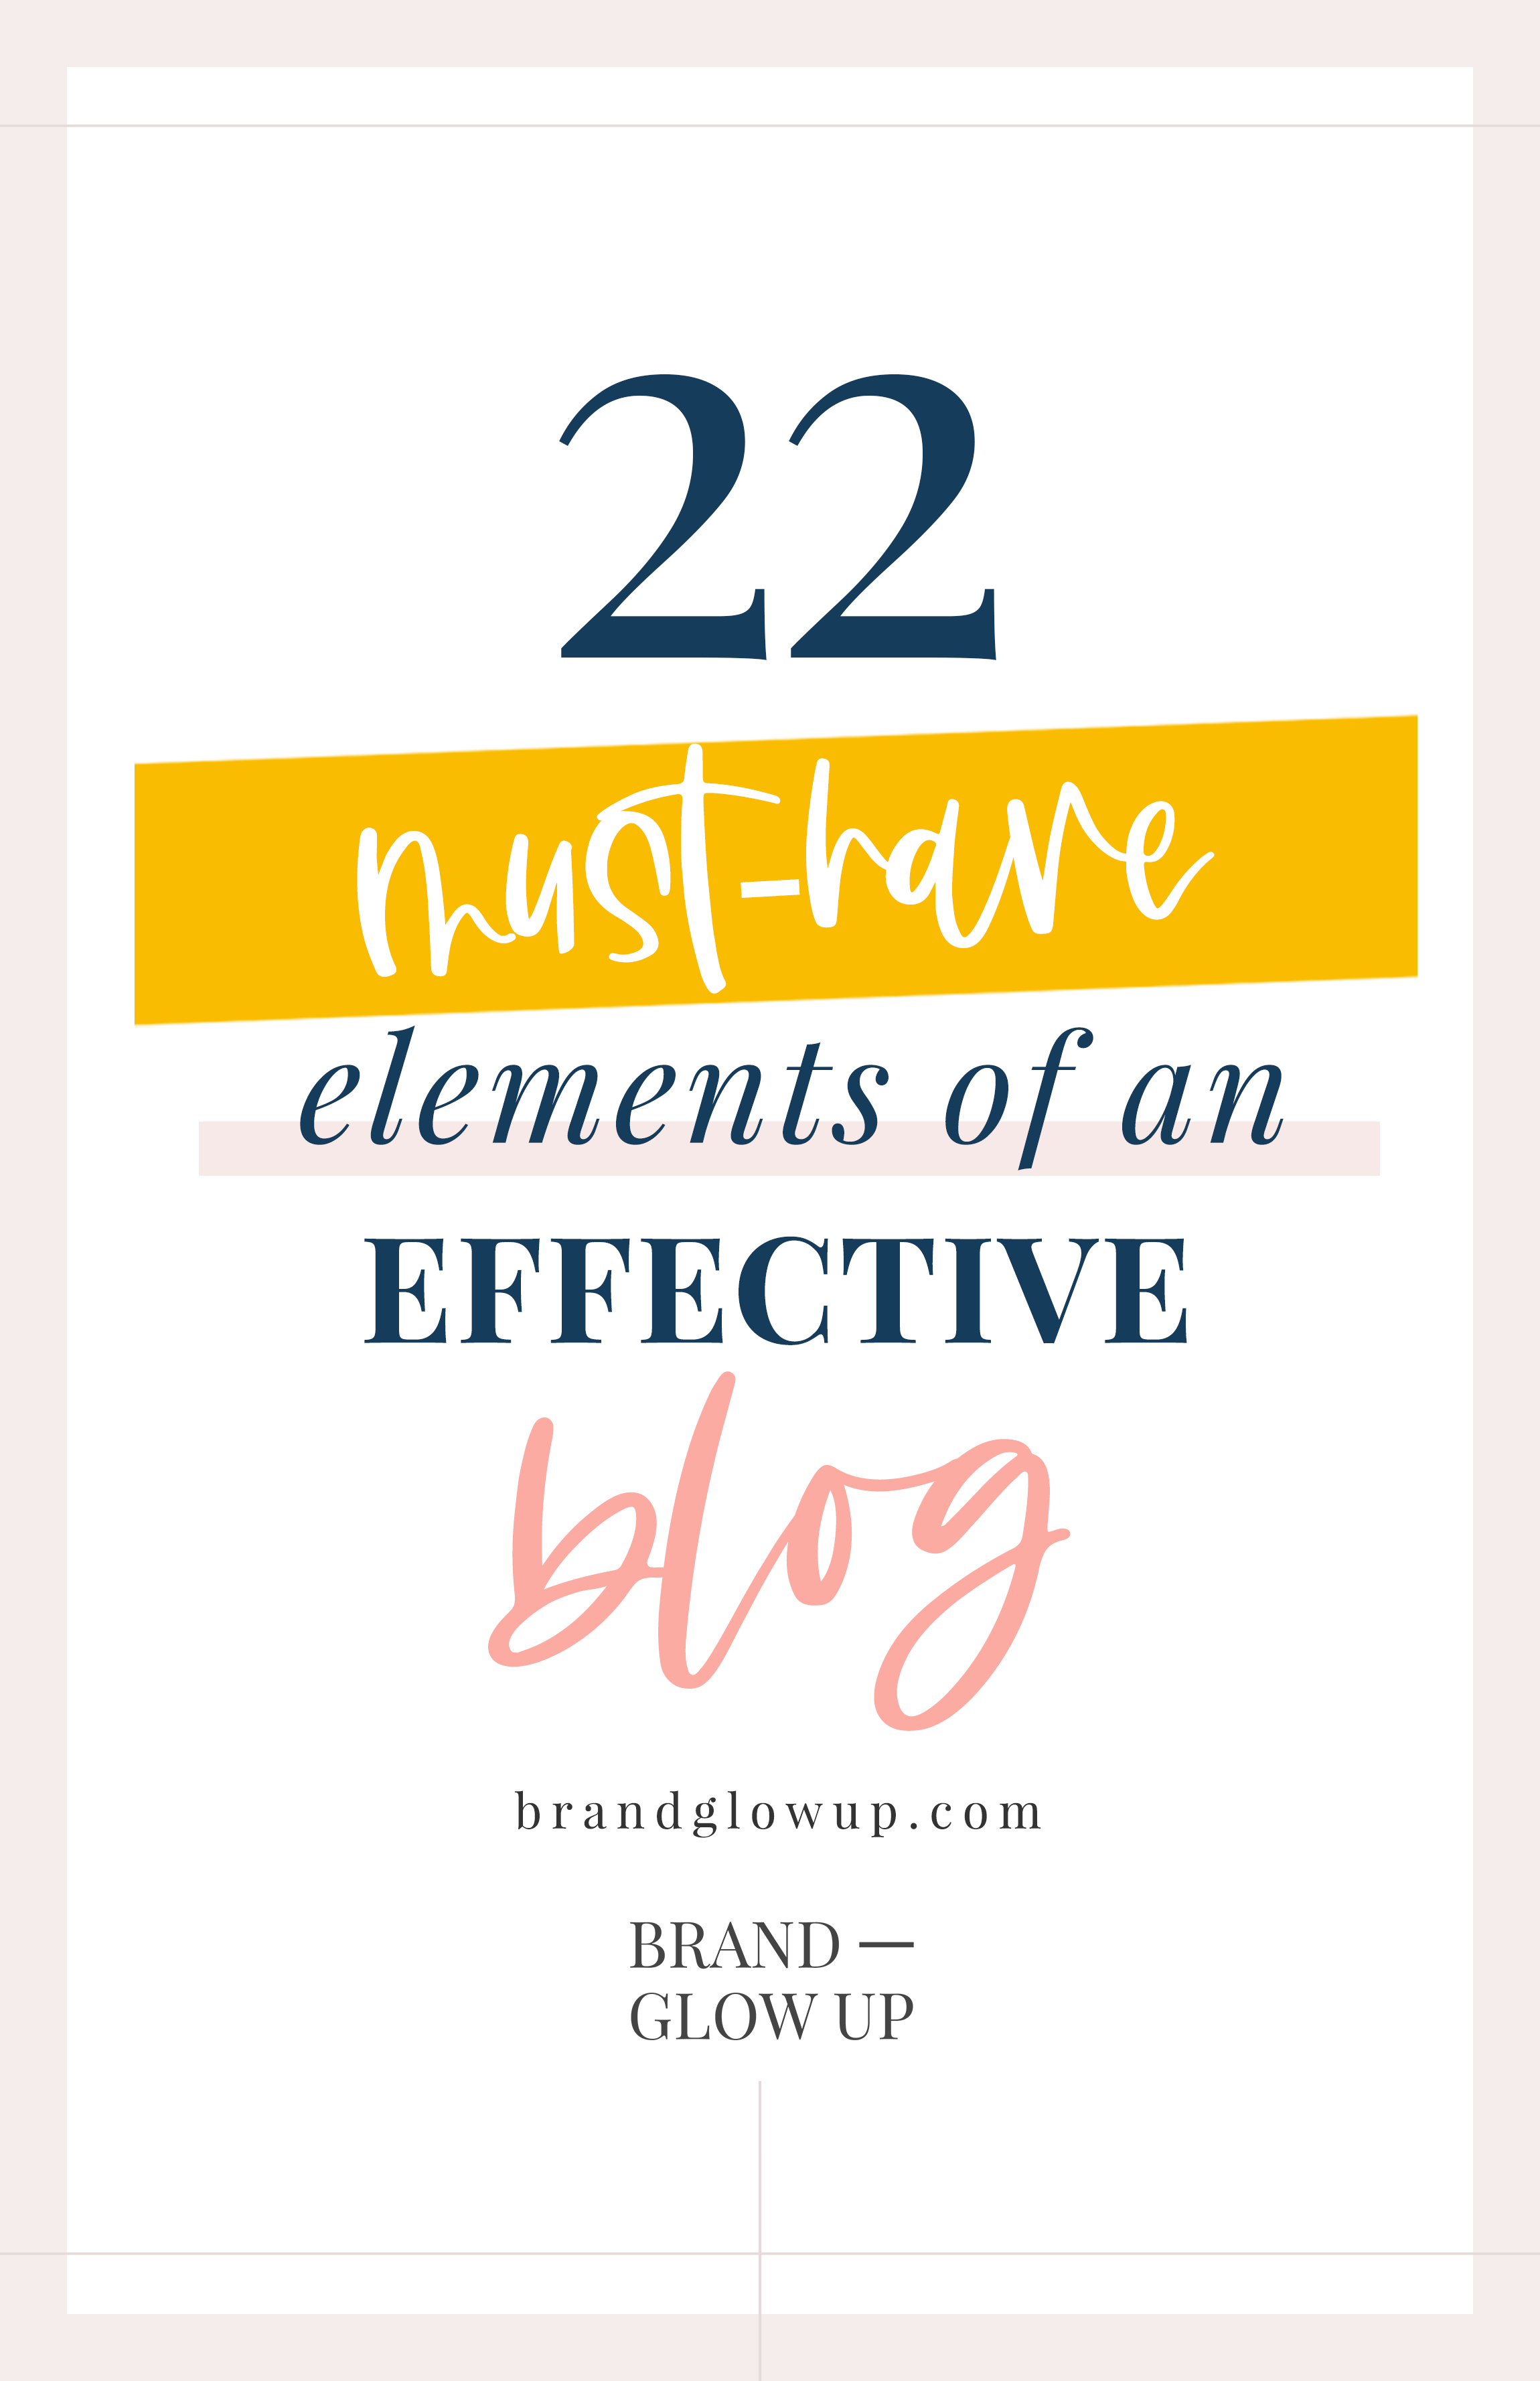 Must Haves for an Effective Blog